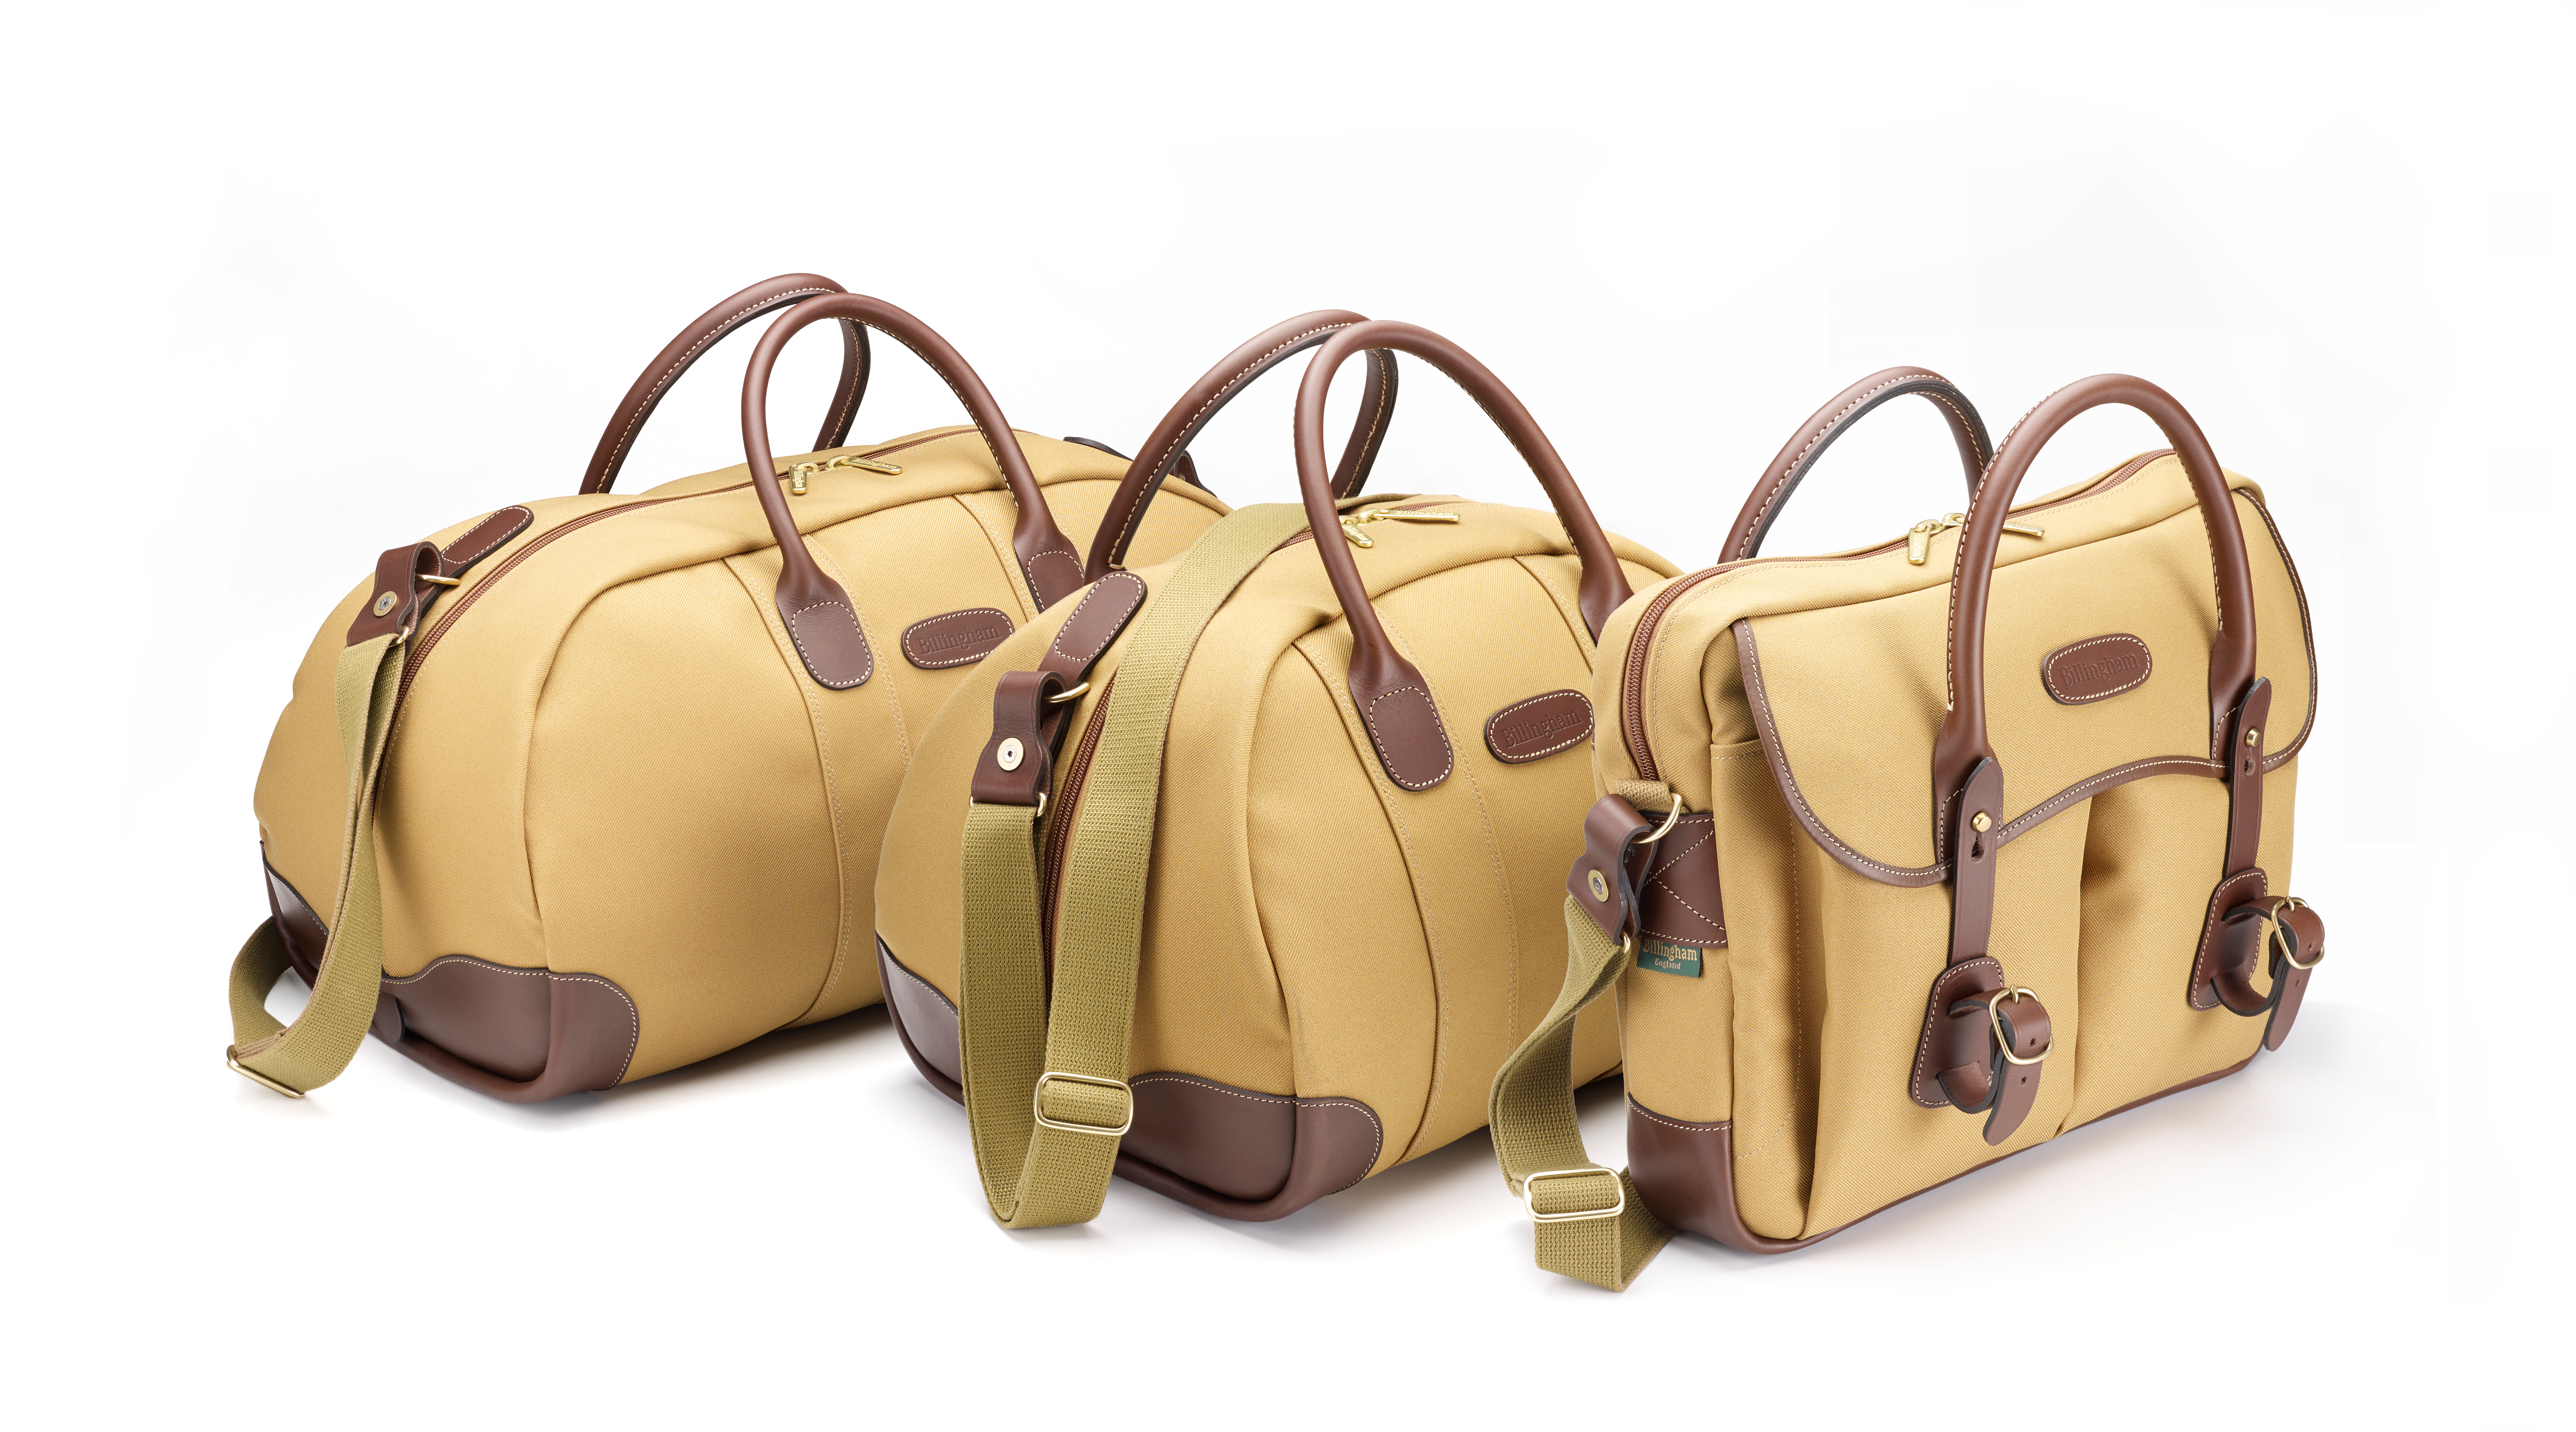 <br><br><br> _Check Out Our_ Leisure Bags